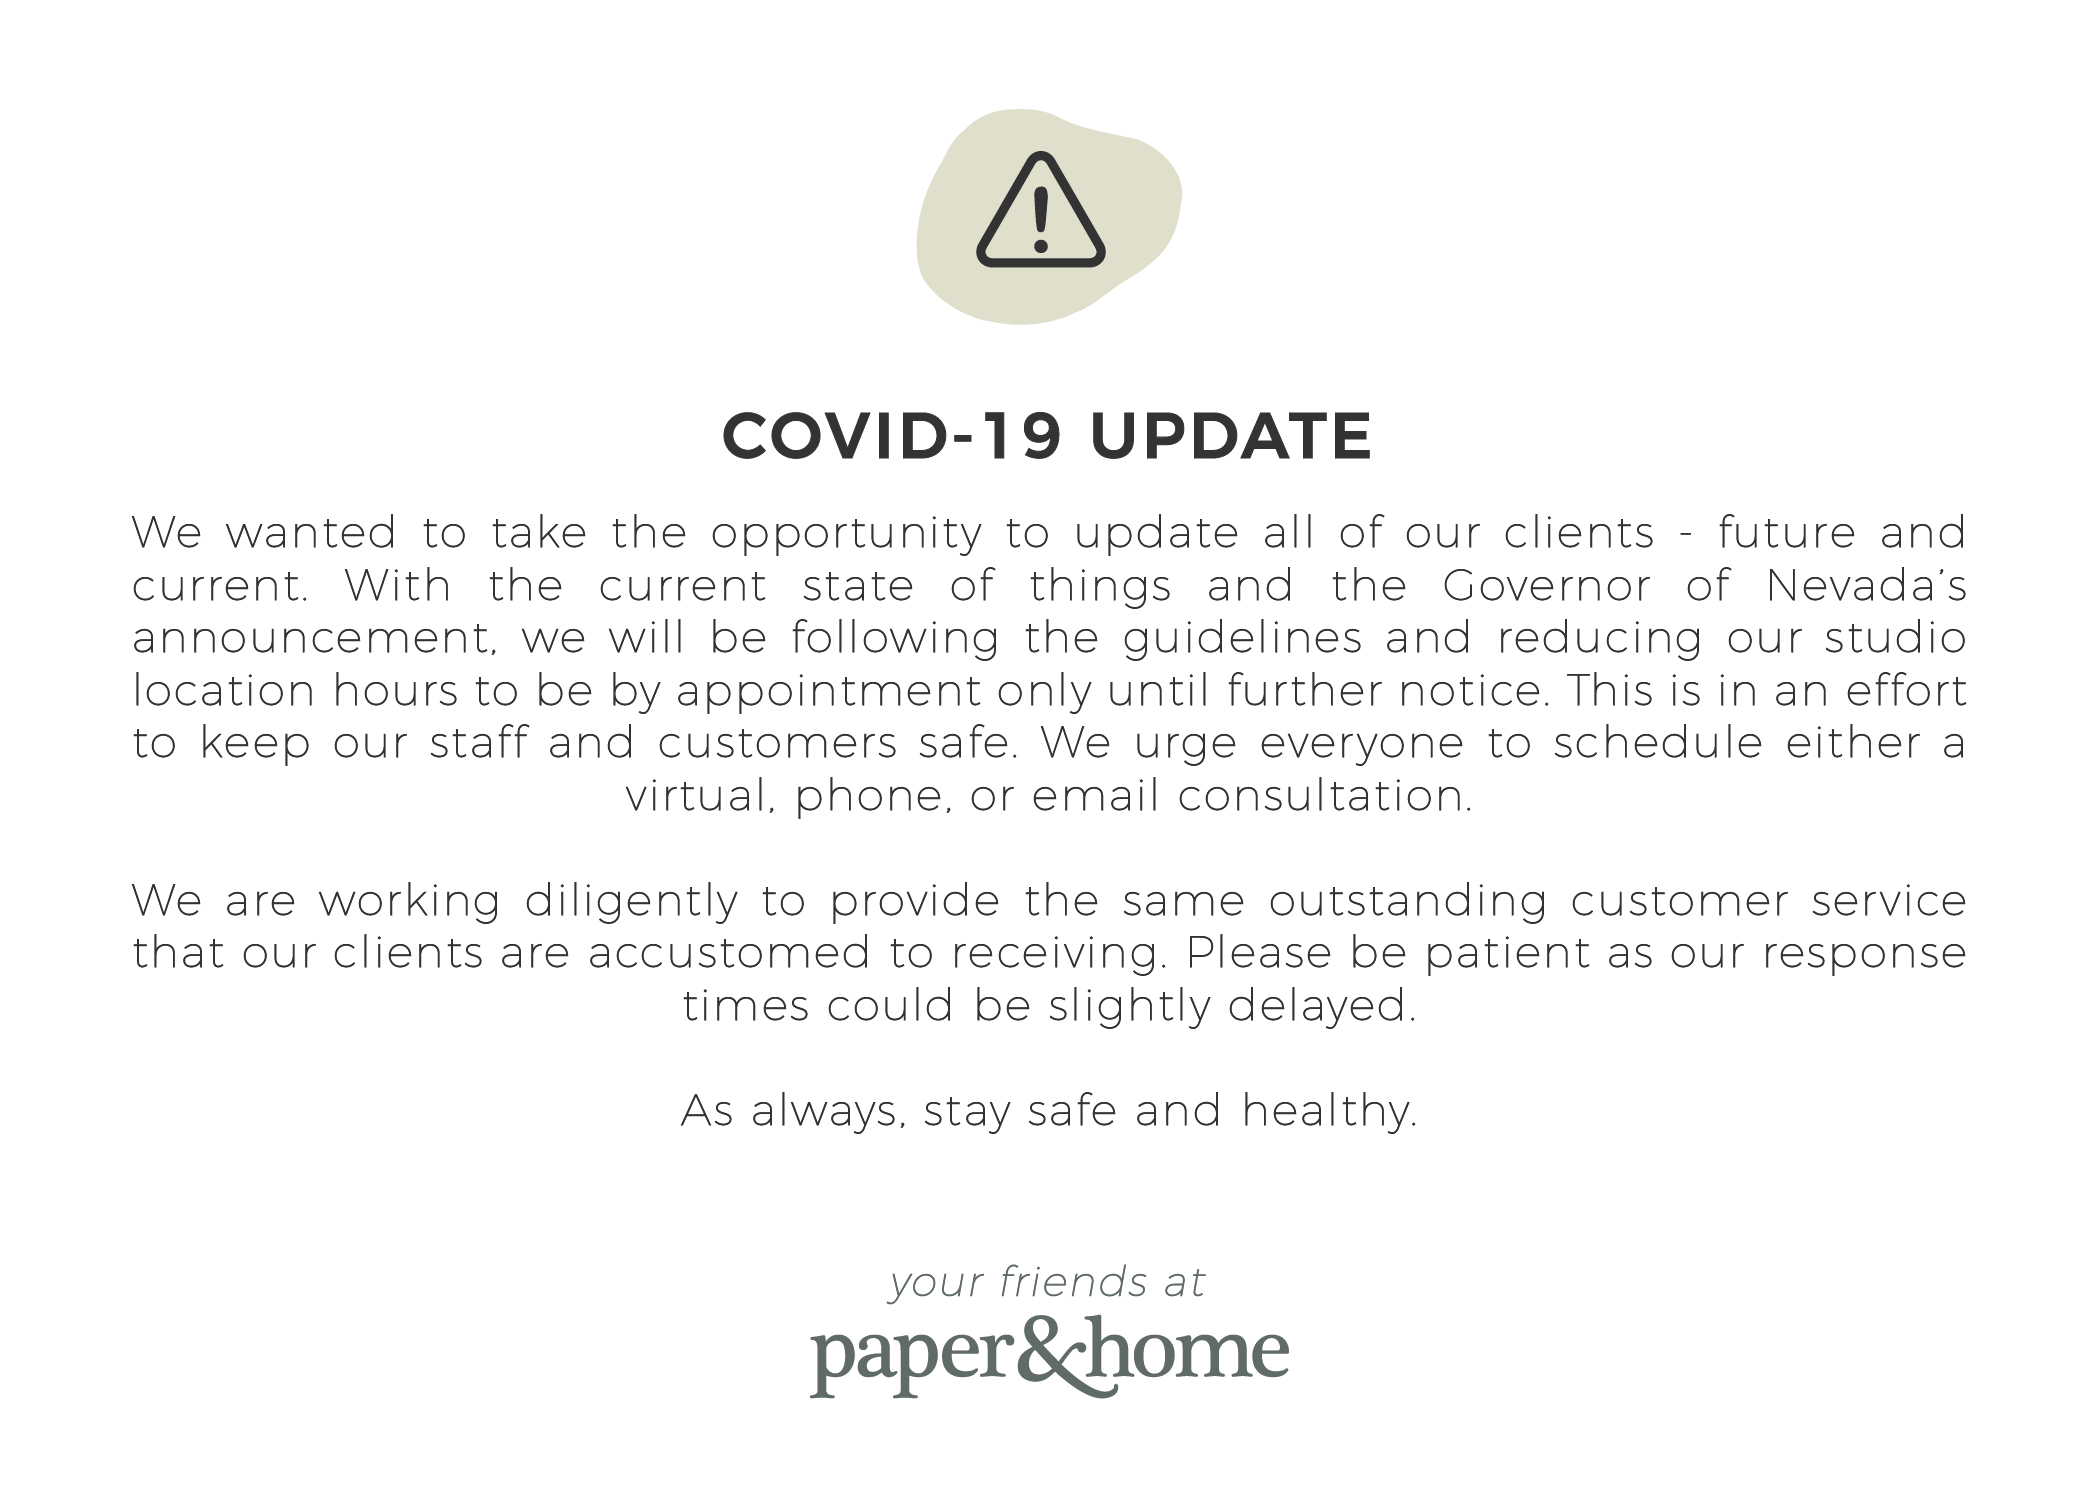 covid-19 update: We wanted to take the opportunity to update all of our clients - future and current. With the current state of things and the Governor of Nevada's announcement, we will be following the guidelines and reducing our studio location hours to be by appointment only until further notice. This is in an effort to keep our staff and customers safe. We urge everyone to schedule either a virtual, phone, or email consultation.We are working diligently to provide the same outstanding customer service that our clients are accustomed to receiving. Please be patient as our response times could be slightly delayed.As always, stay safe and healthy.